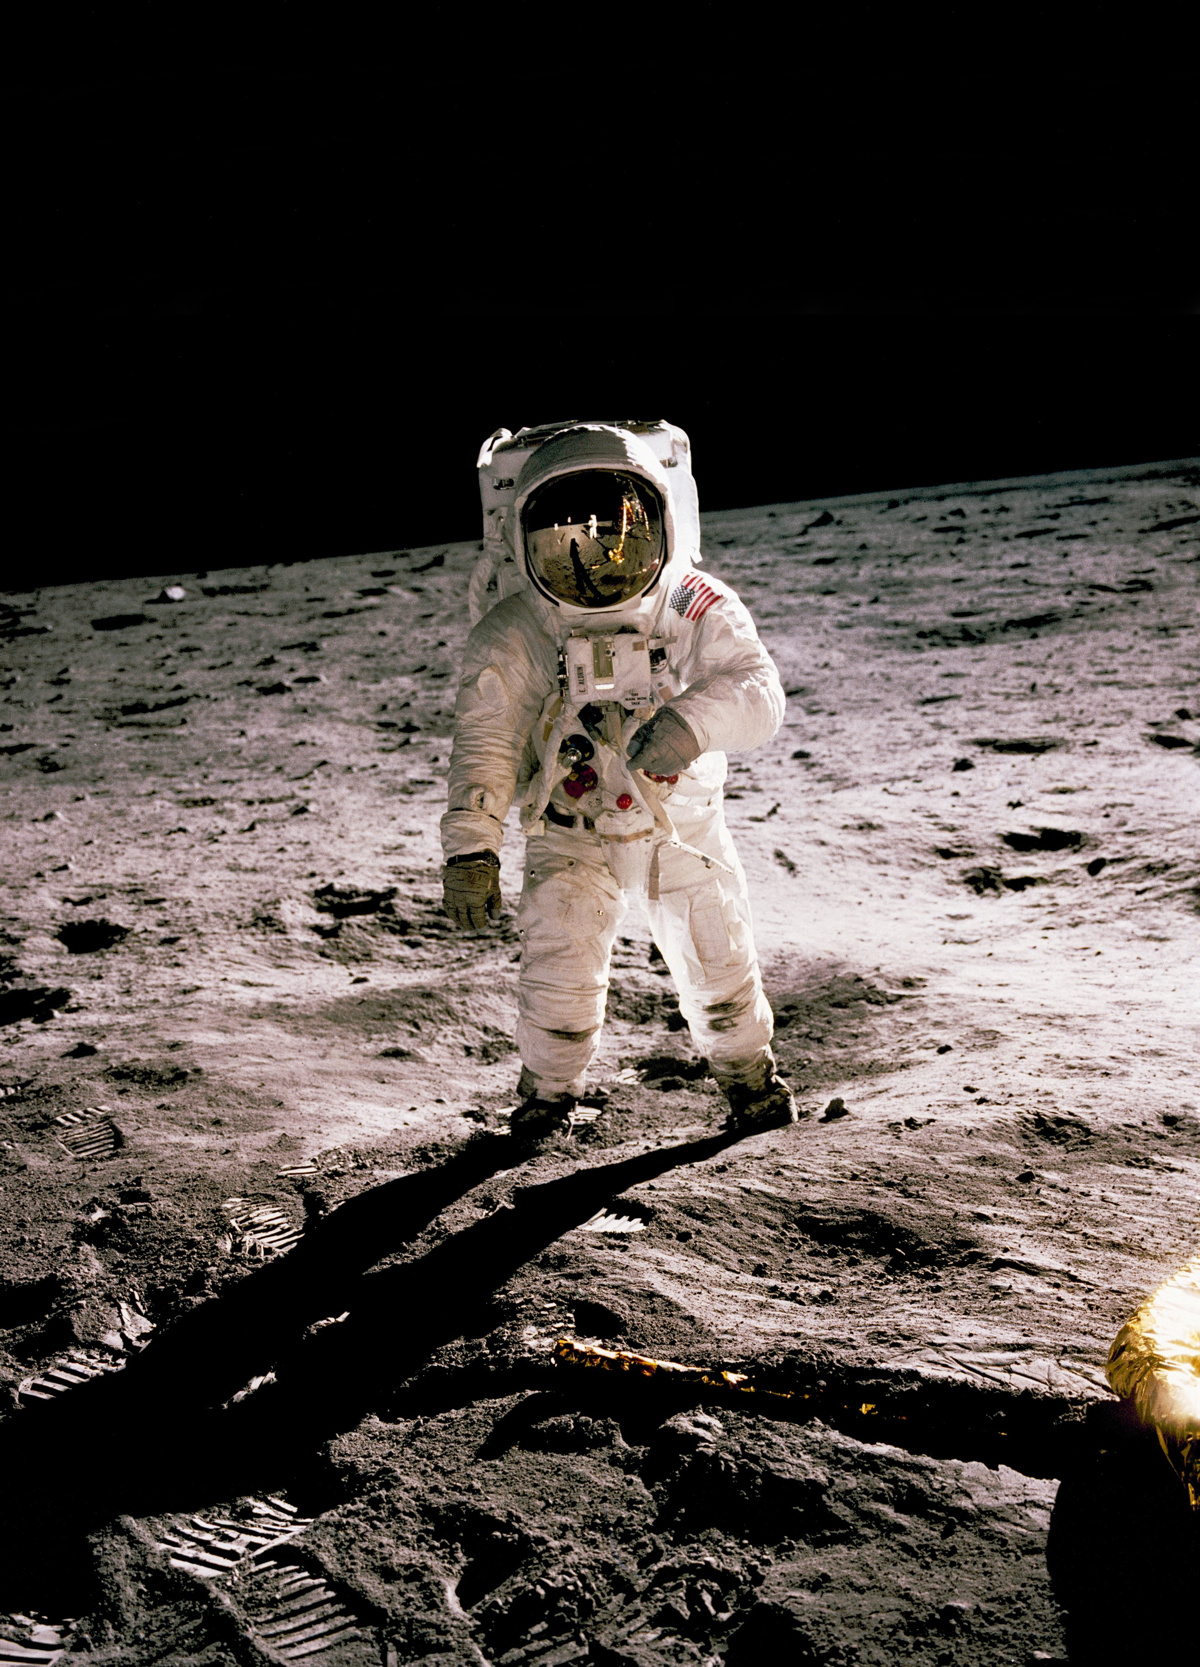 Buzz Aldrin Apollo 11 on moon